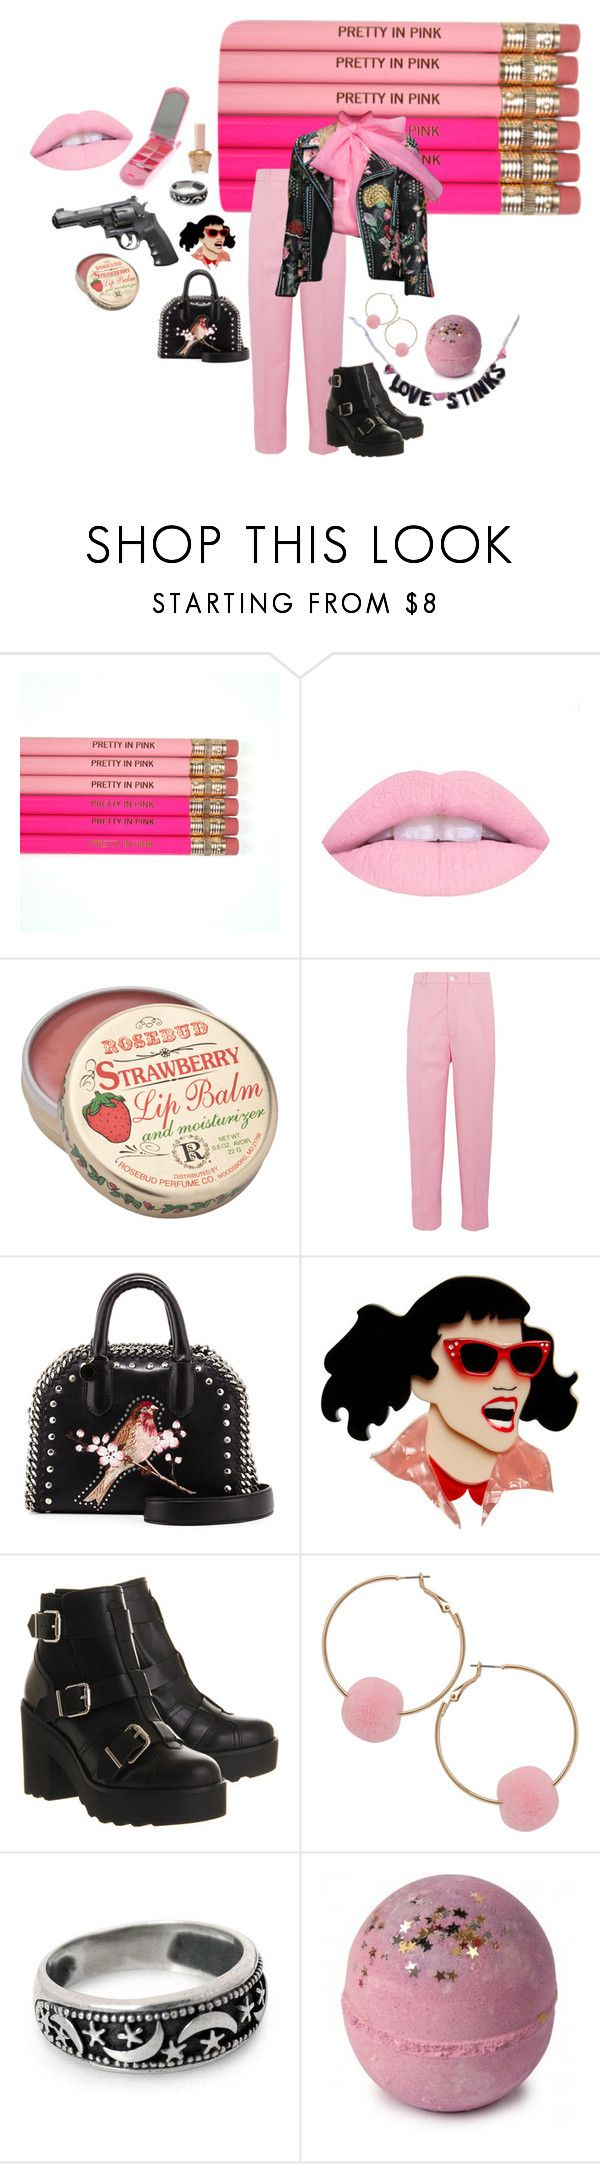 """pink n black"" by peachplanets ❤ liked on Polyvore featuring Smith & Wesson, claire's, Gucci, STELLA McCARTNEY, Erstwilder, Office, Humble Chic, NOVICA and Paul & Joe"